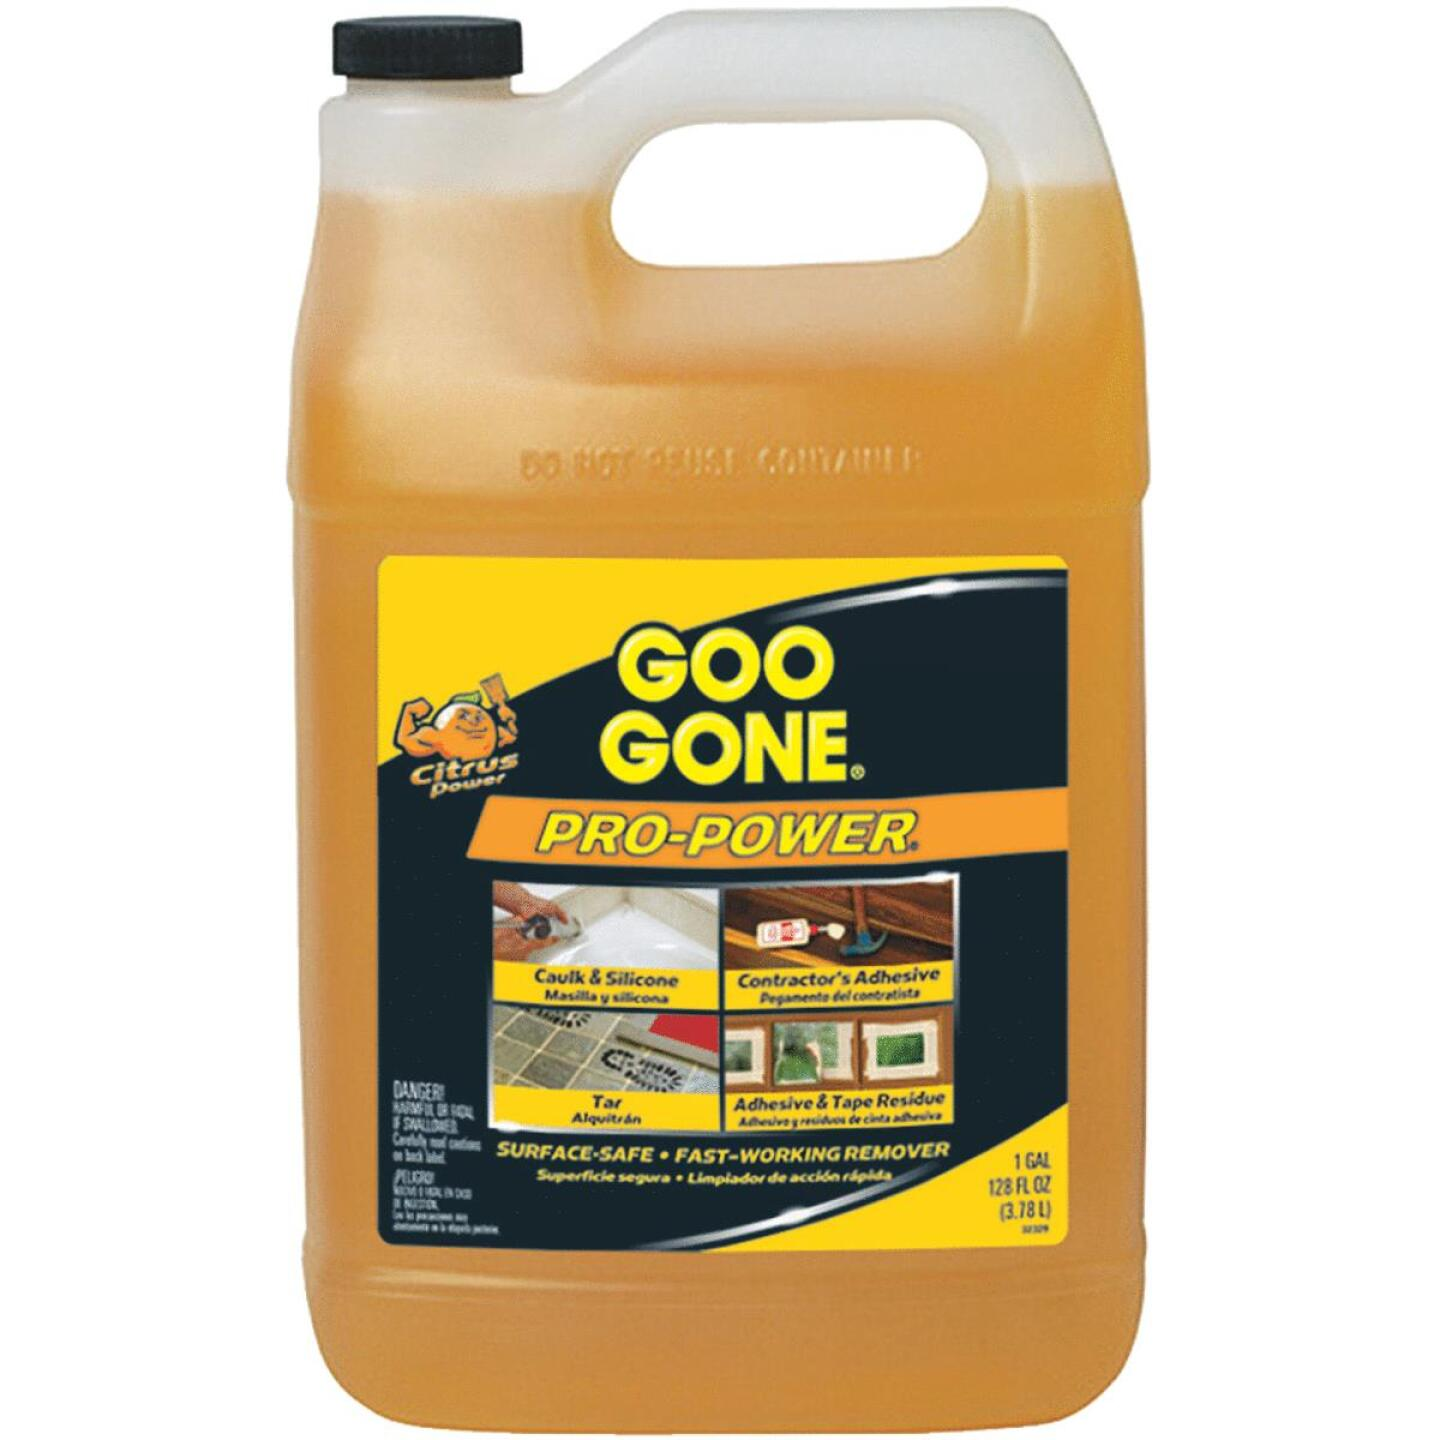 Goo Gone 1 Gal. Pro-Power Adhesive Remover Image 51